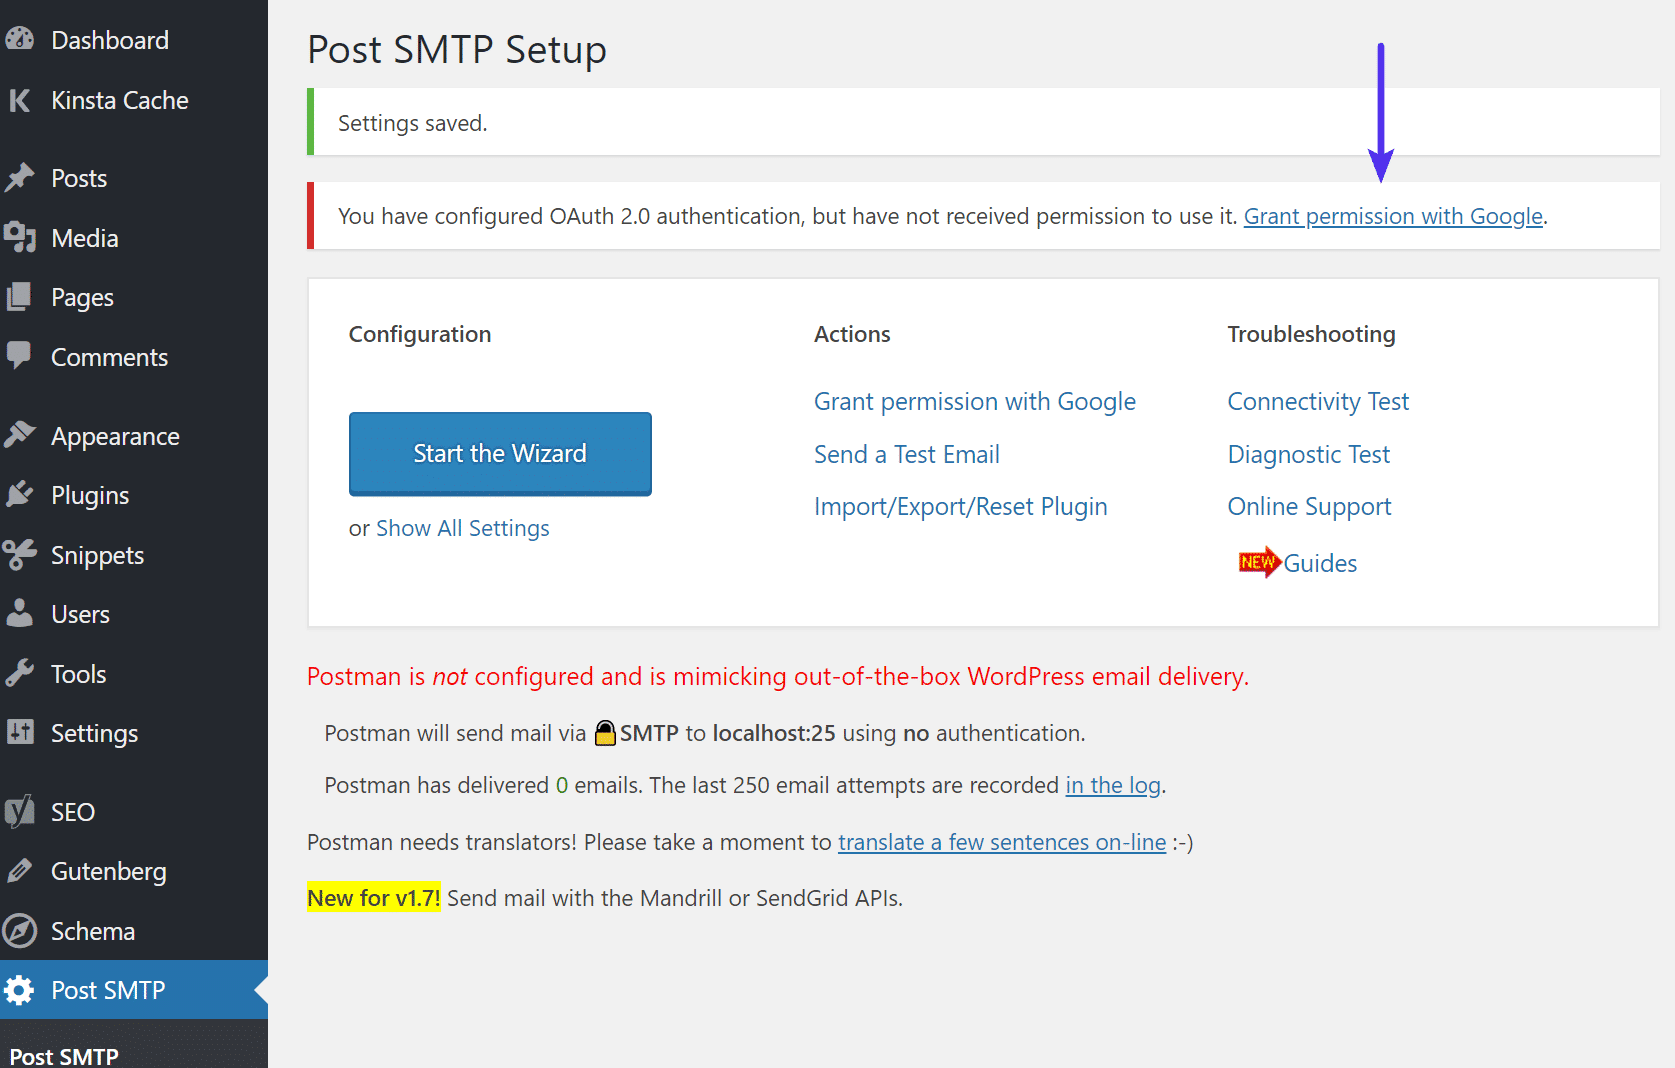 Accorder les permissions de Post SMTP